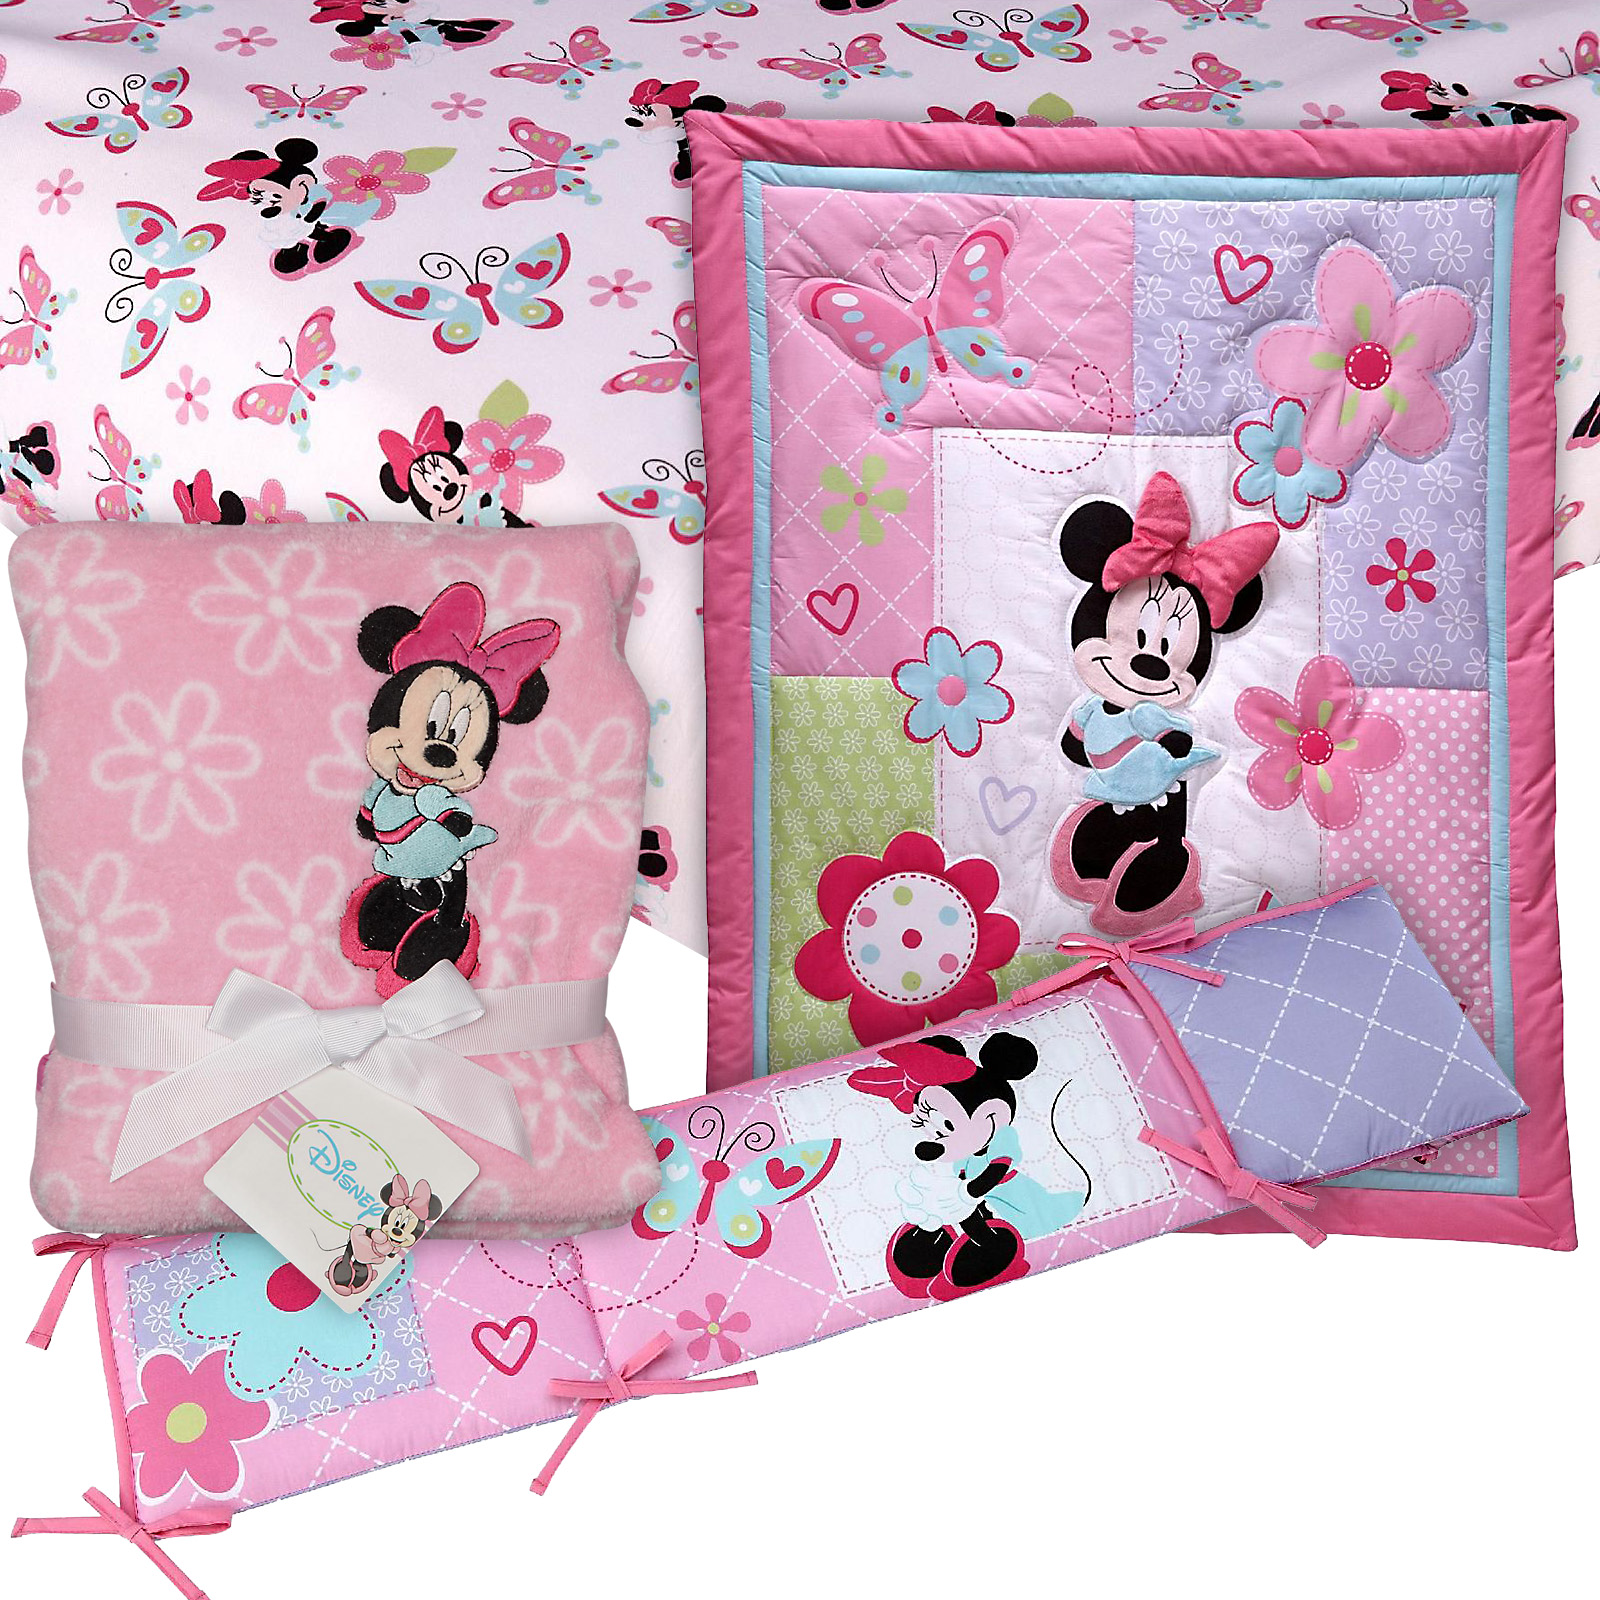 Minnie Mouse 4 PC. Crib Set with Sheet & Blanket Baby Bundle